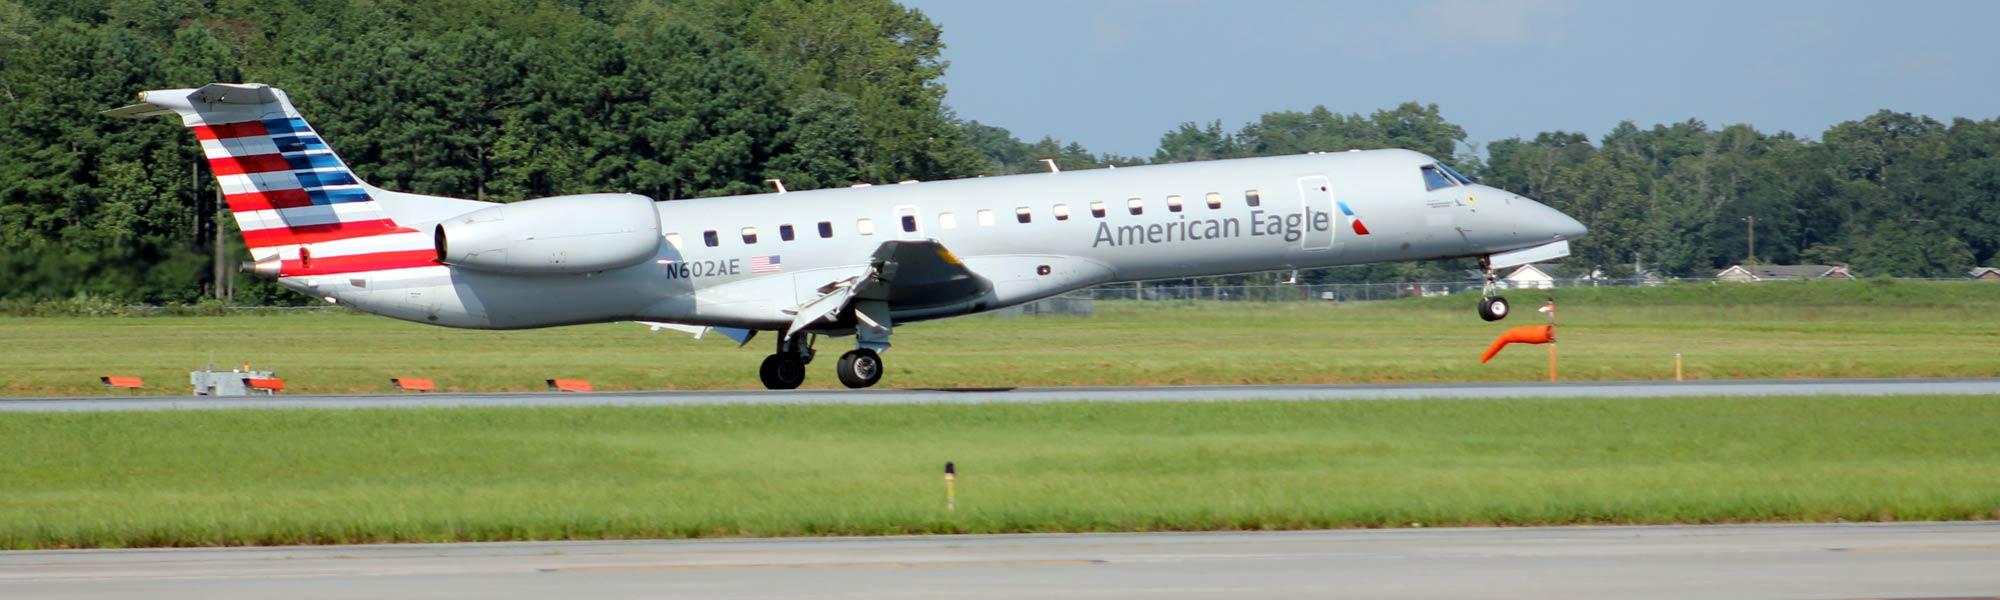 An American Airlines American Eagle plane taking off from Salisbury Regional Airport